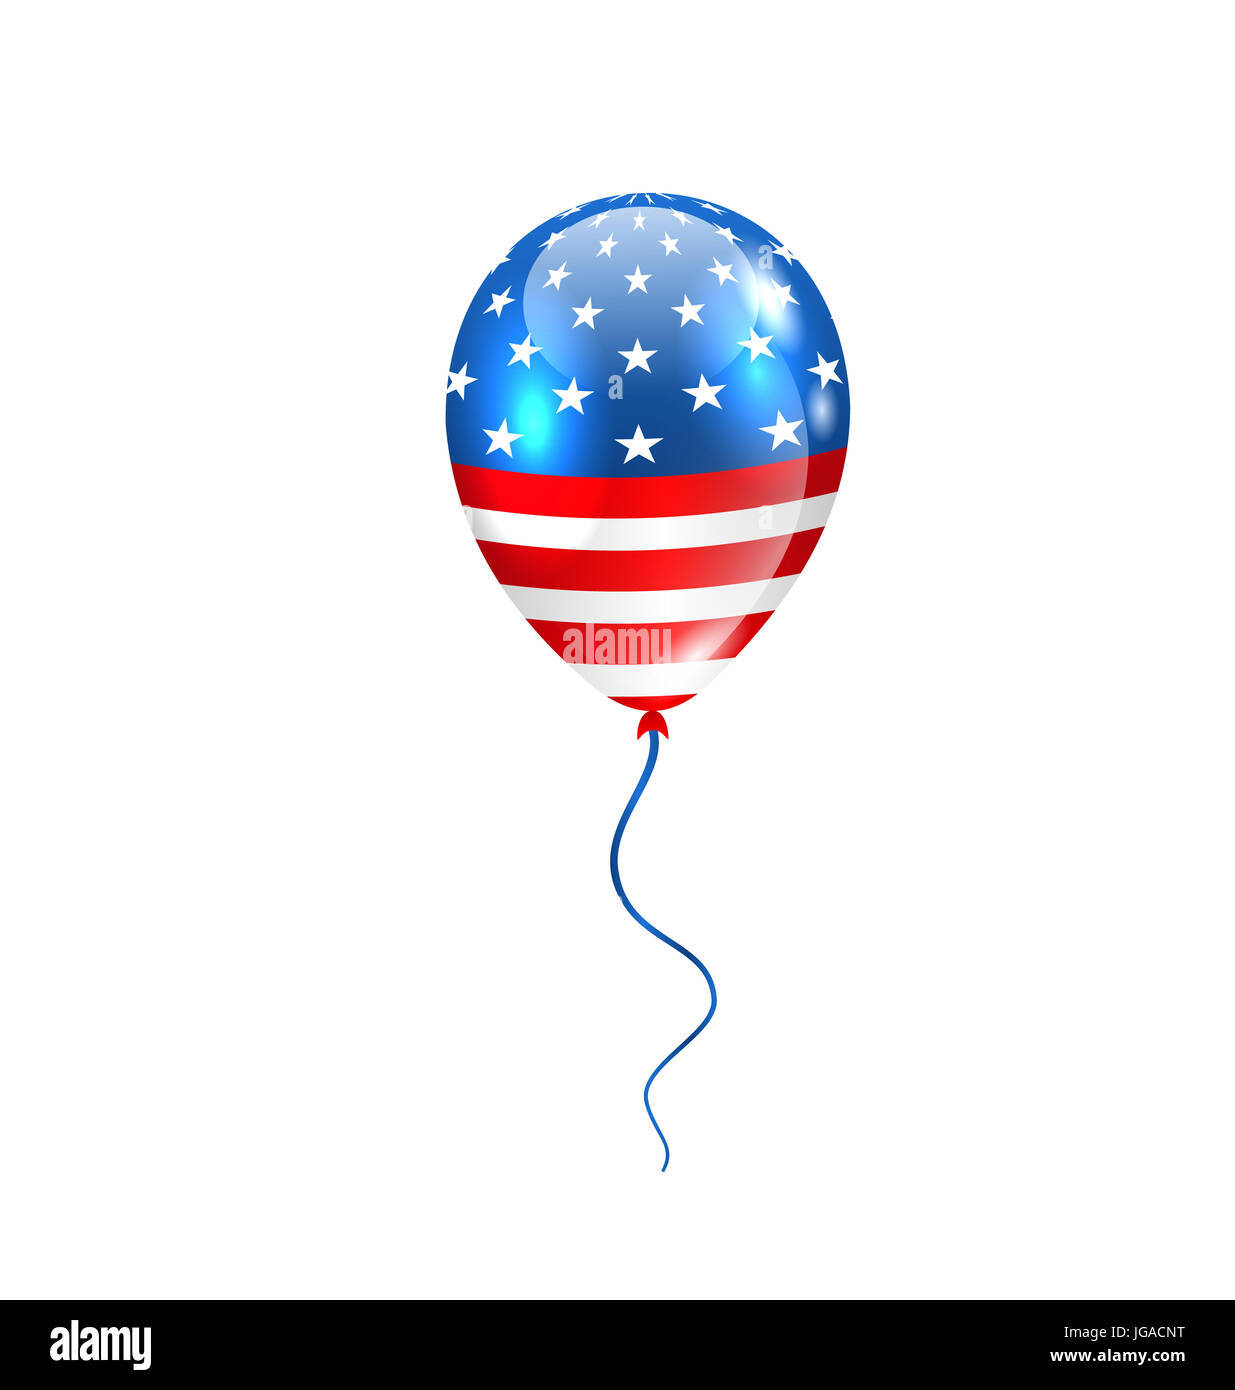 d7f25930257 Illustration Flying Balloon in American Flag Colors for Design for Natioan  Holidays - - Stock Image